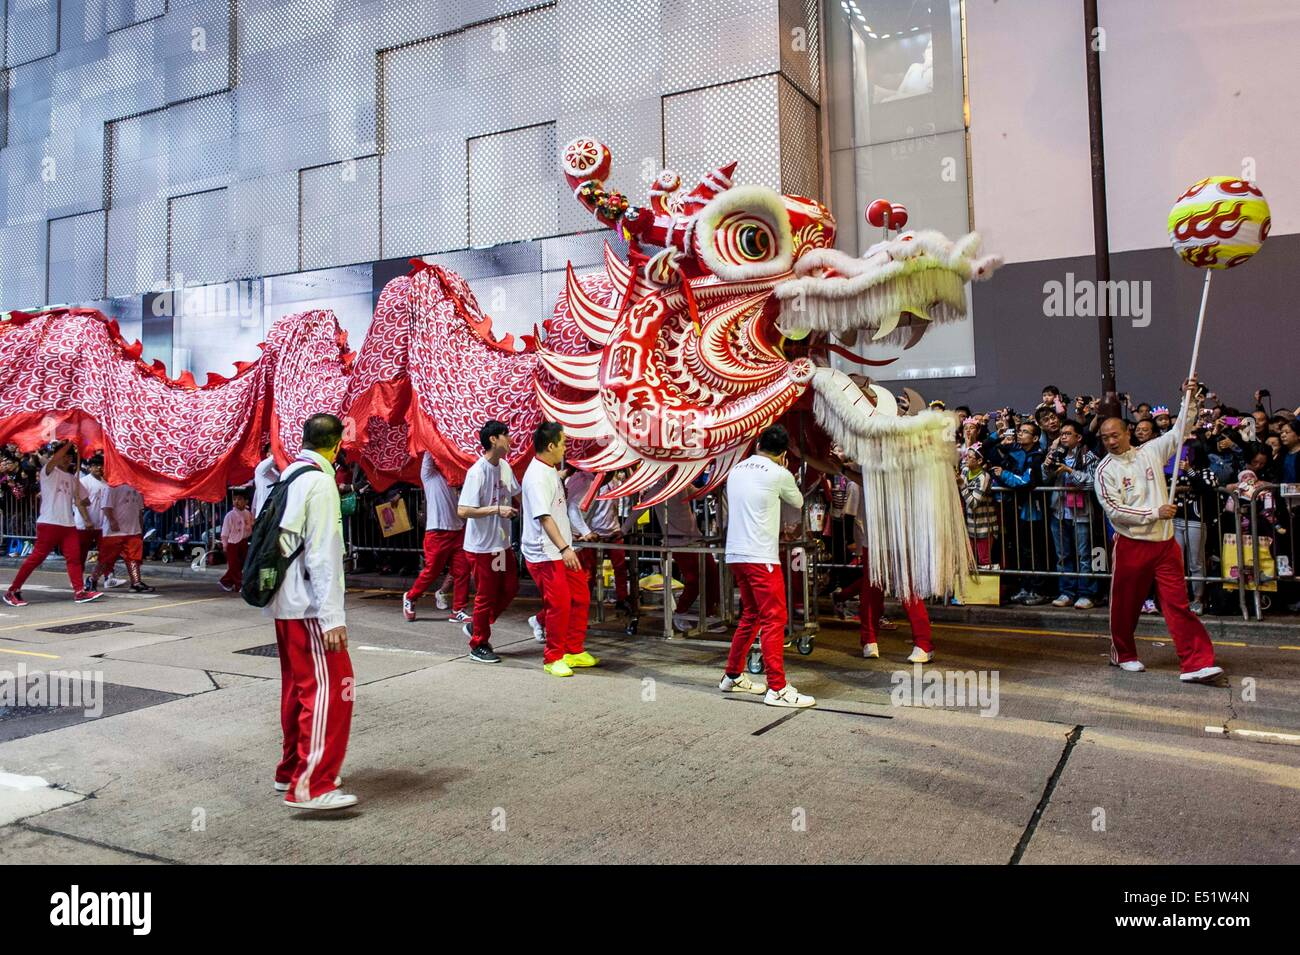 Artists perform during the Chinese New Year of the Horse Parade at Tsim Sha Tsui in Hong Kong - Stock Image